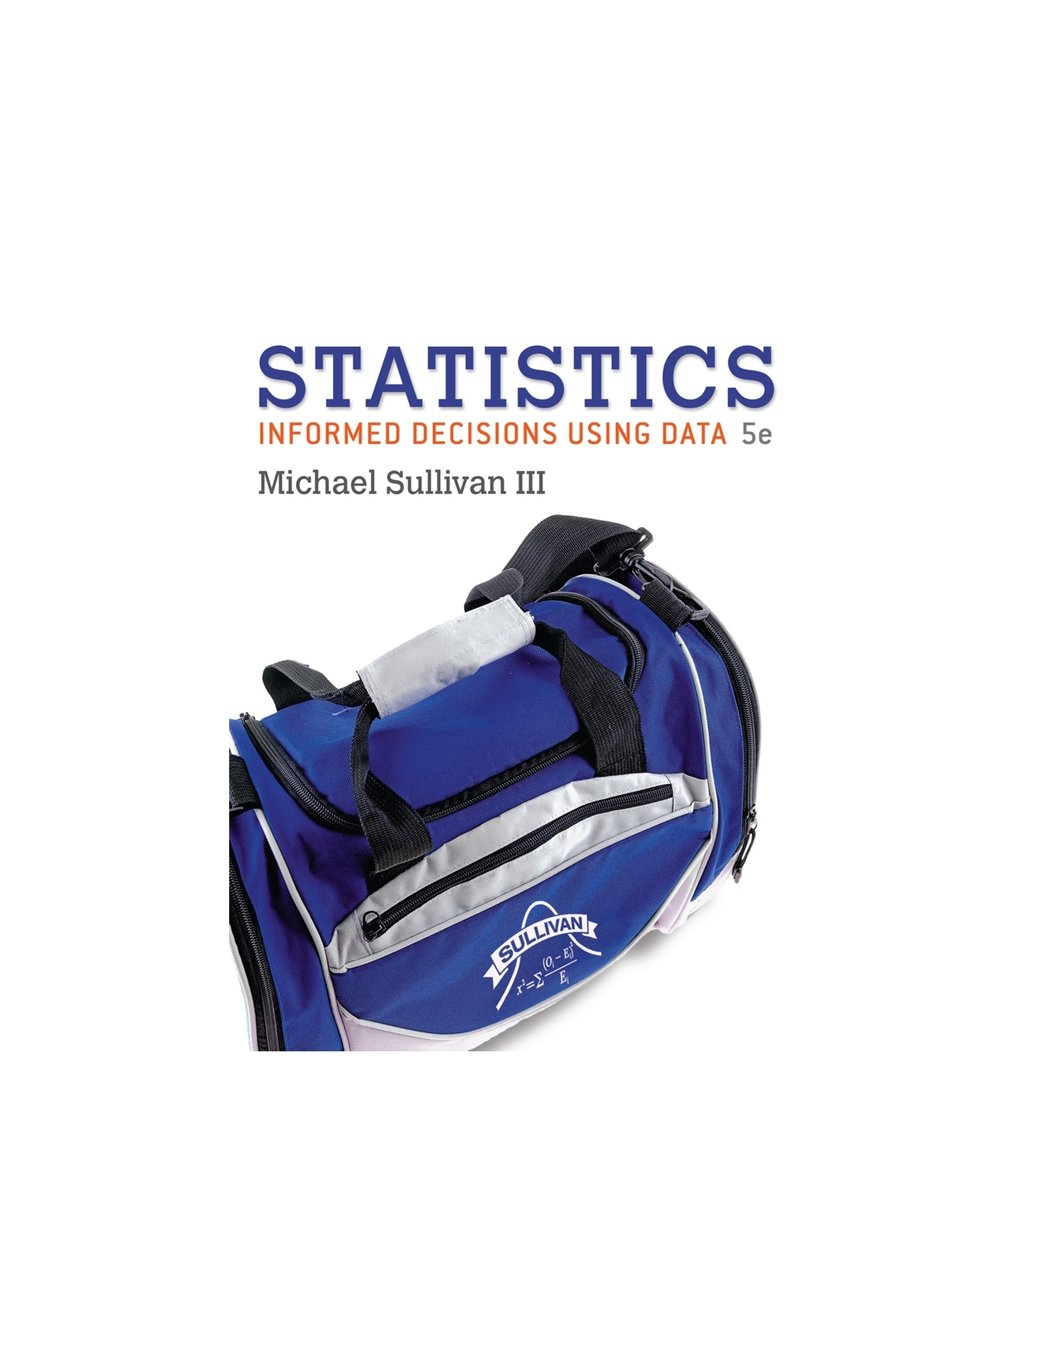 Statistics: Informed Decisions Using Data (5th Edition)-Stand alone by Pearson